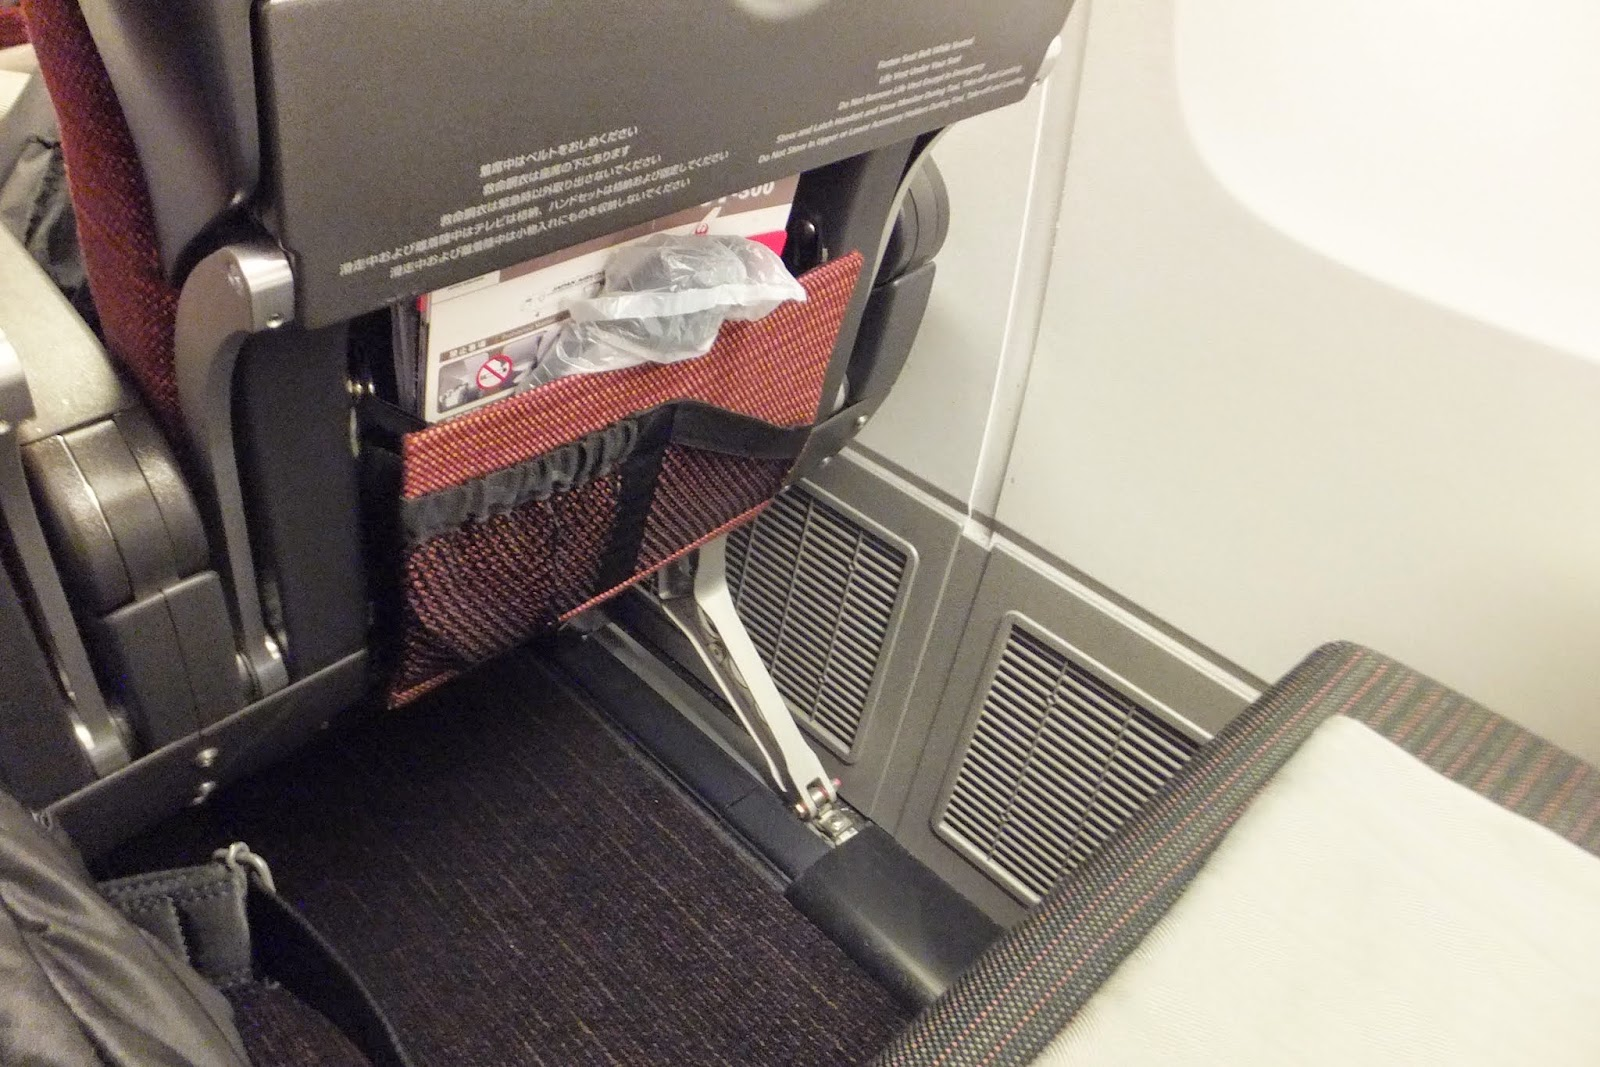 jal-sky-suite-seat-economy-seat2